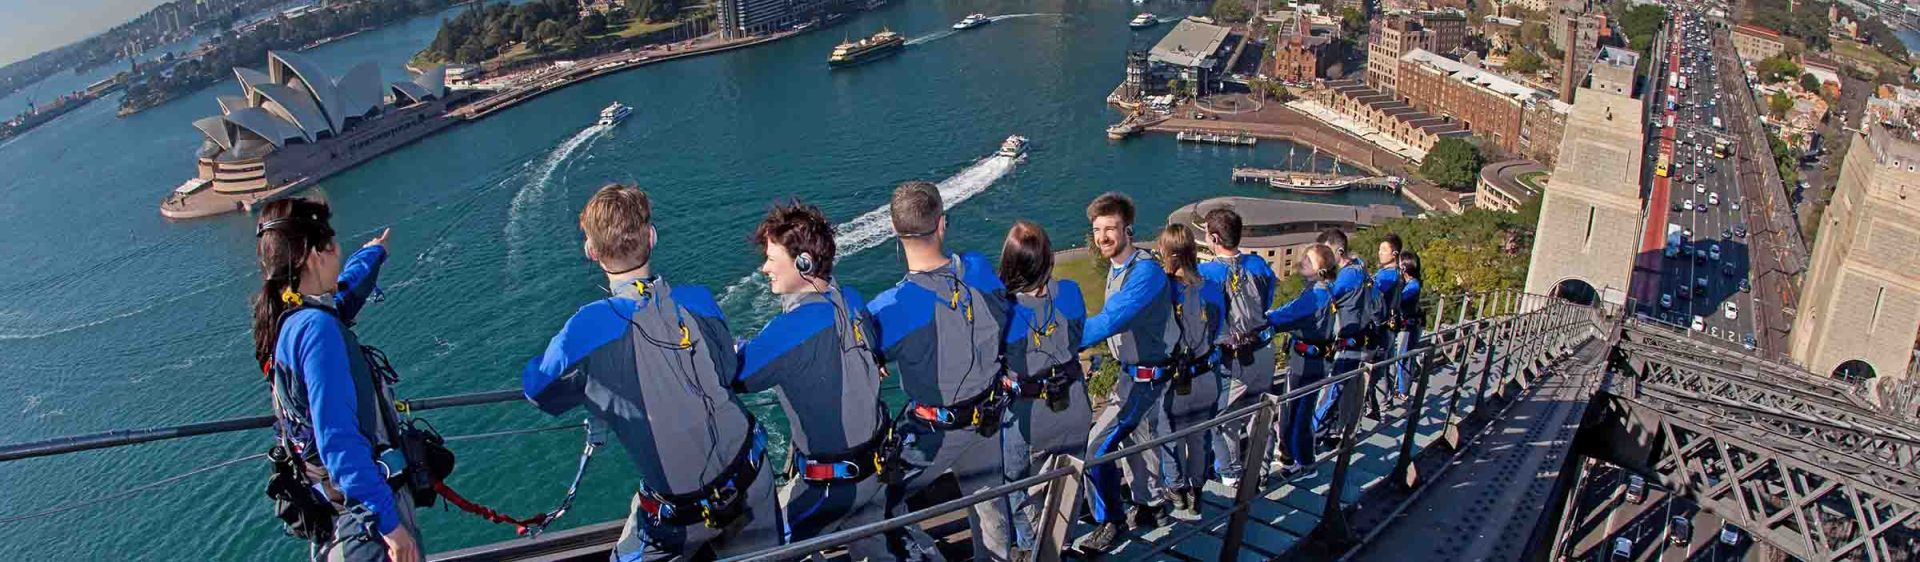 Save up to $134 with these offers for Sydney Bridge Climb promo codes and discount tickets.